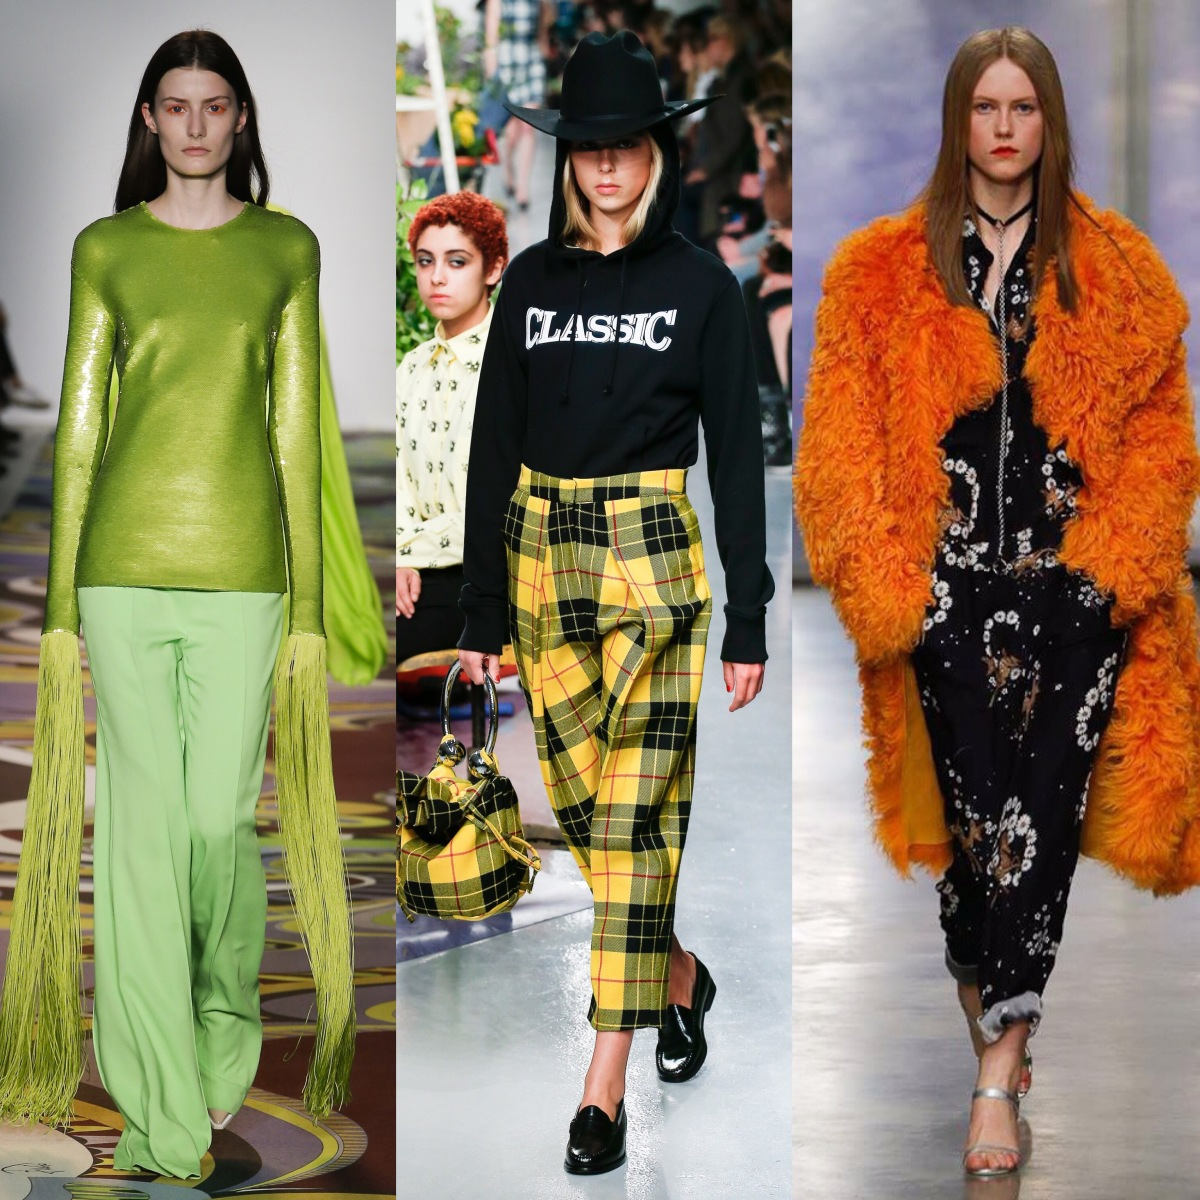 Fall 2017 Trends You'll Be Seeing This Season